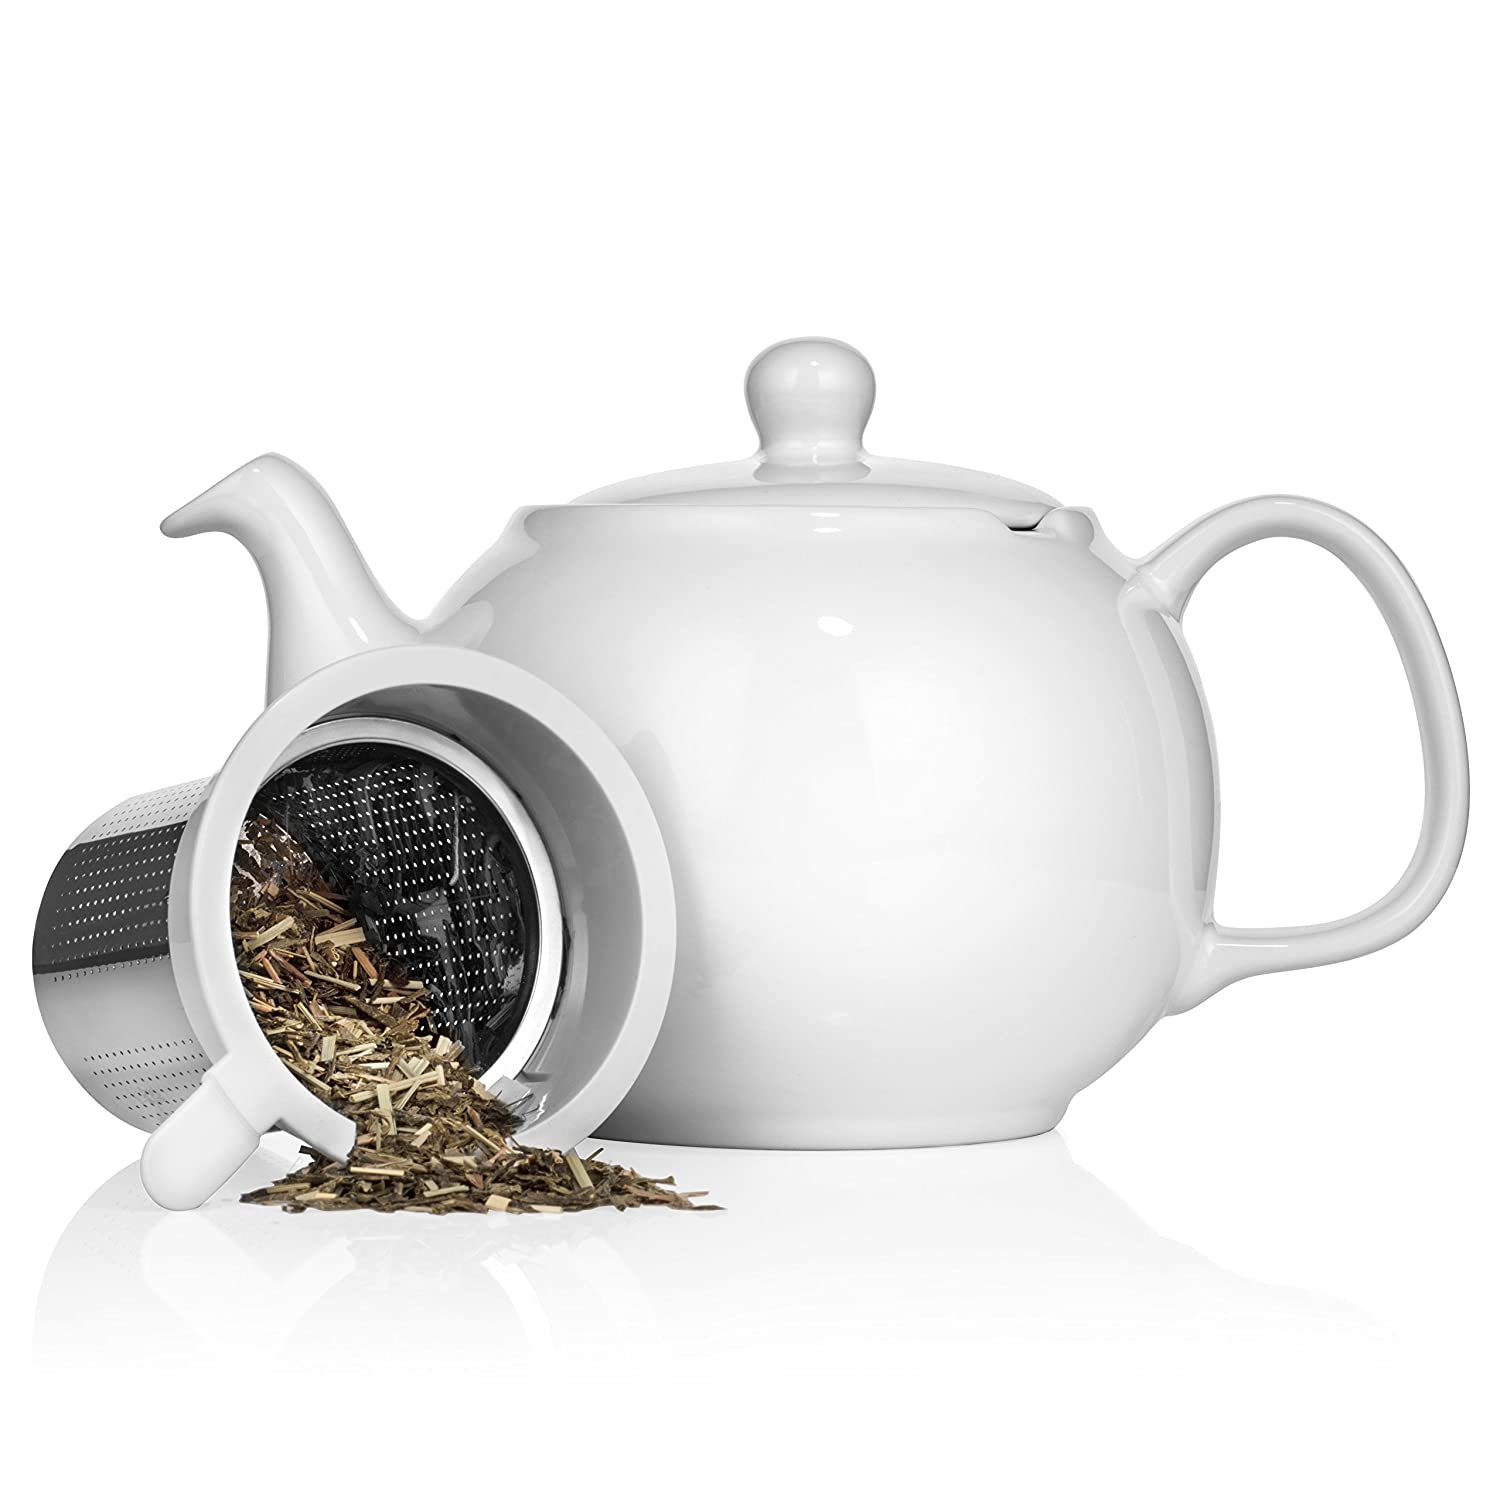 Saki Large Porcelain Teapot with Removable Stainless Steel Infuser, 48 ounce tea pot (White)